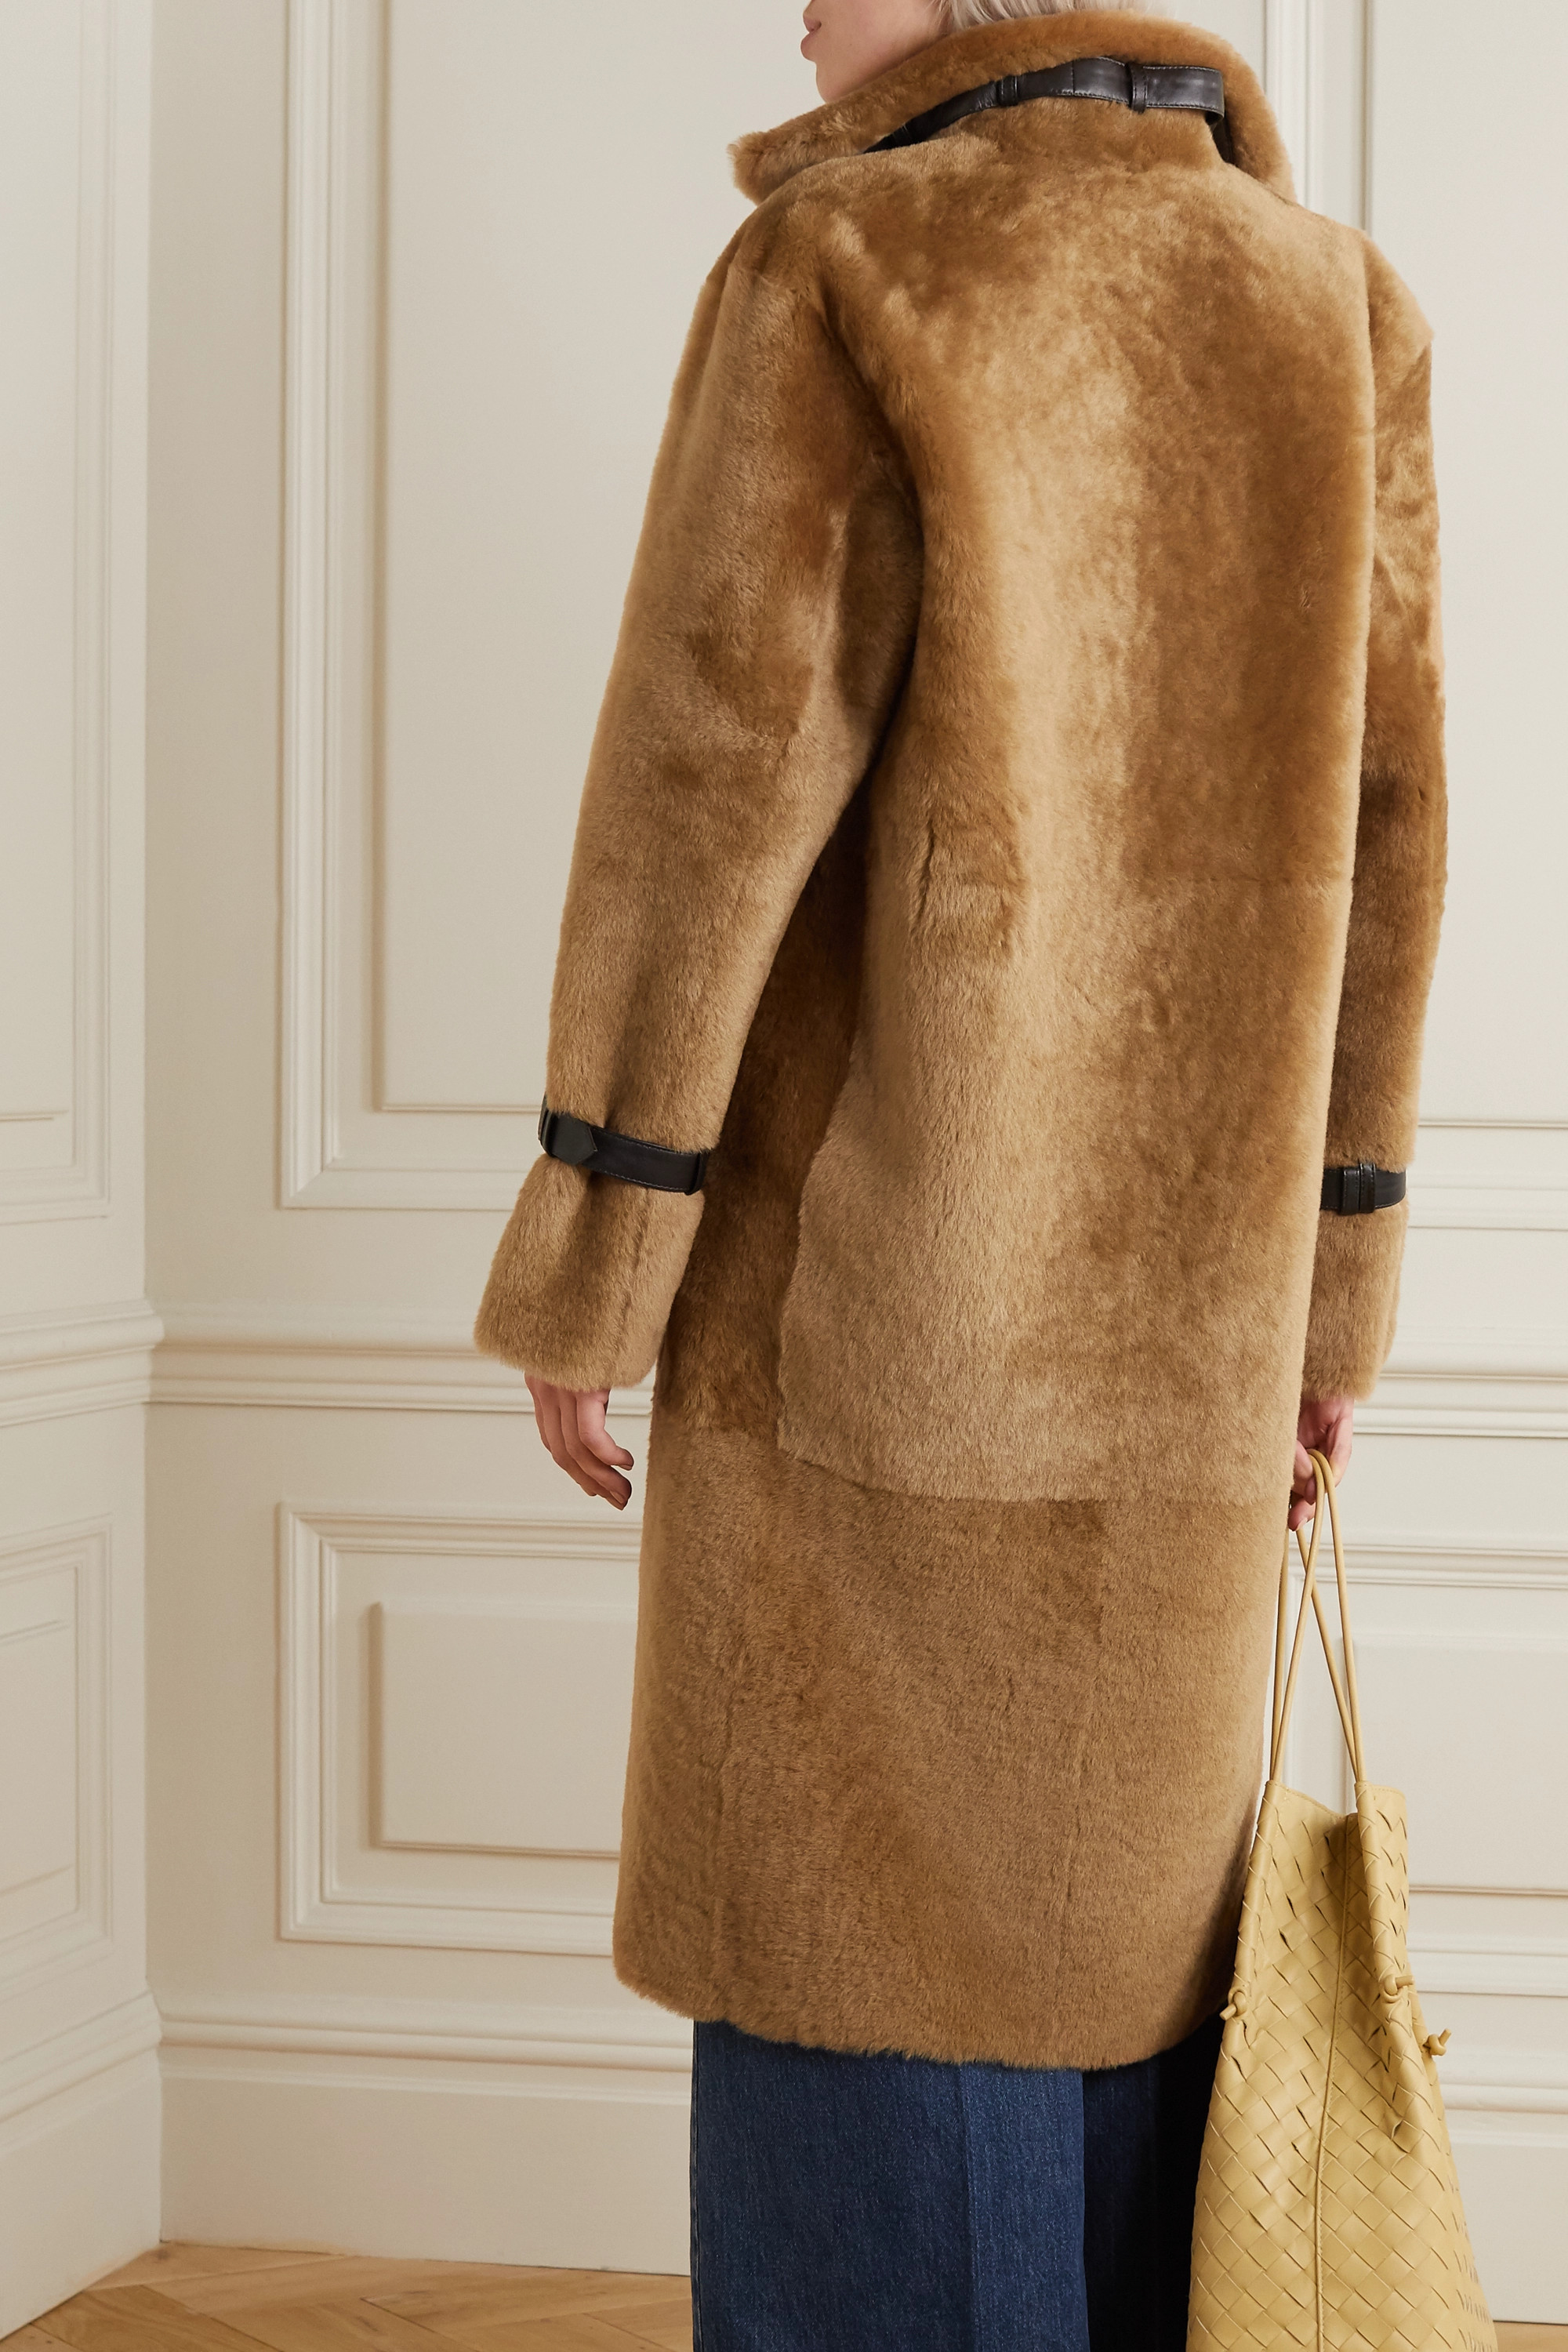 REMAIN Birger Christensen Campioni belted leather-trimmed shearling coat